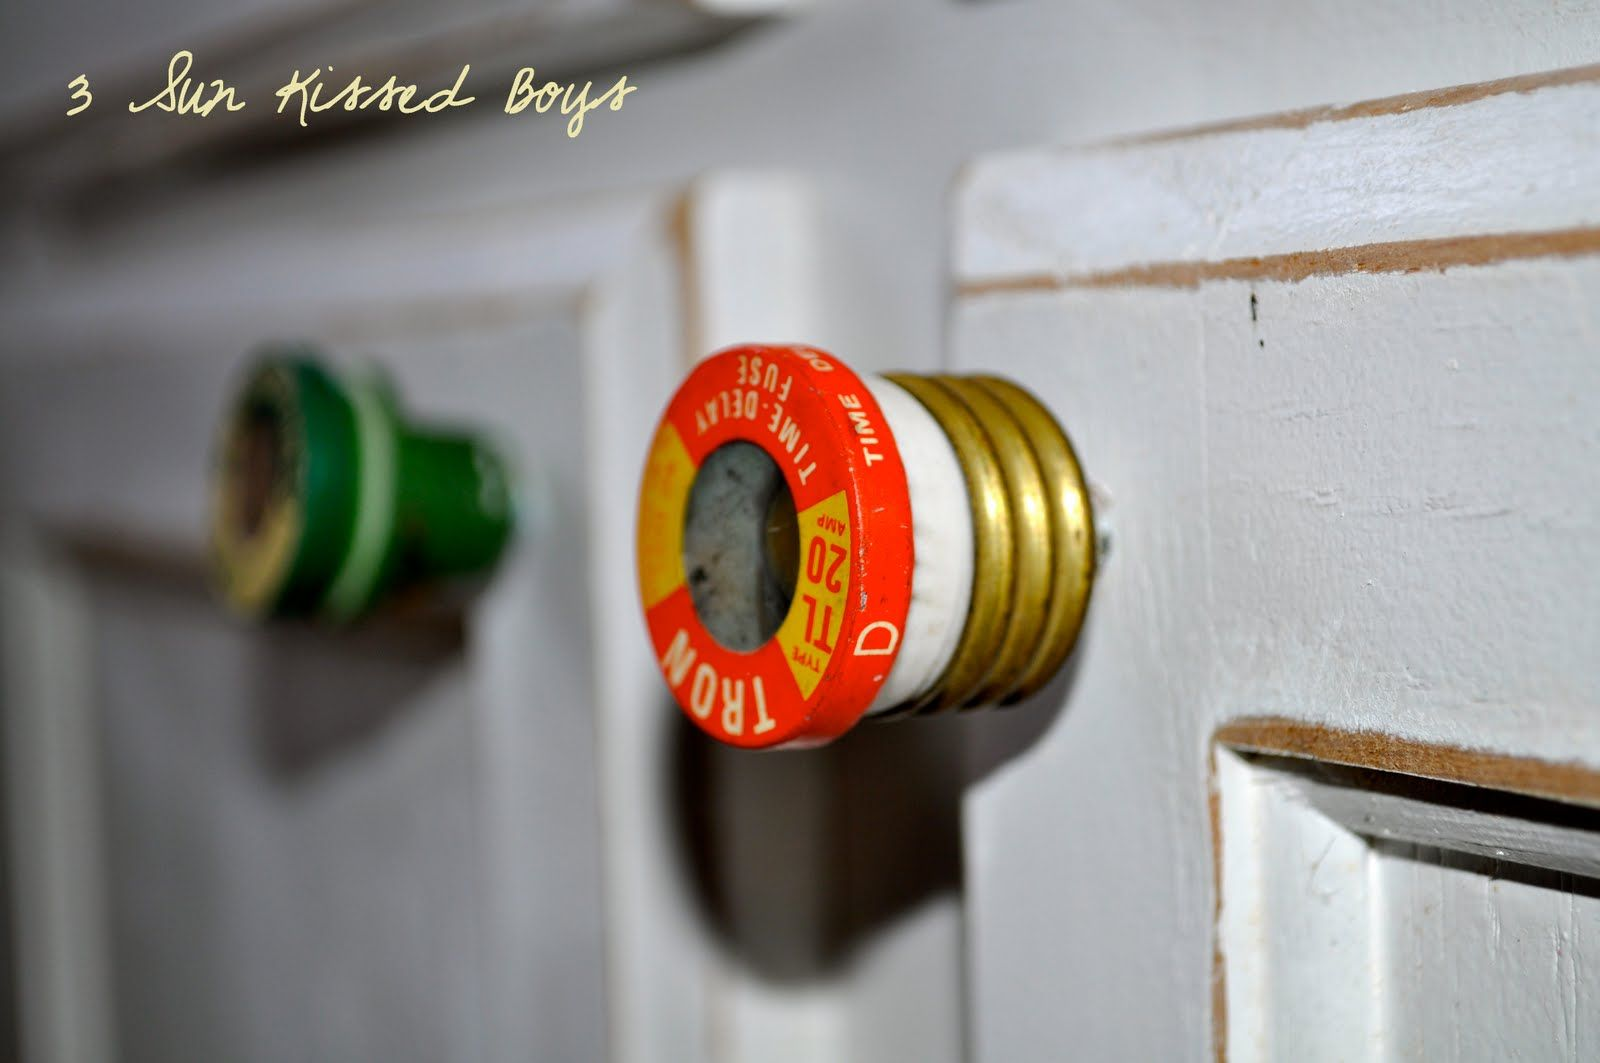 Charming Old Fuses Into Knobs! How Clever, Cute, And Colorful